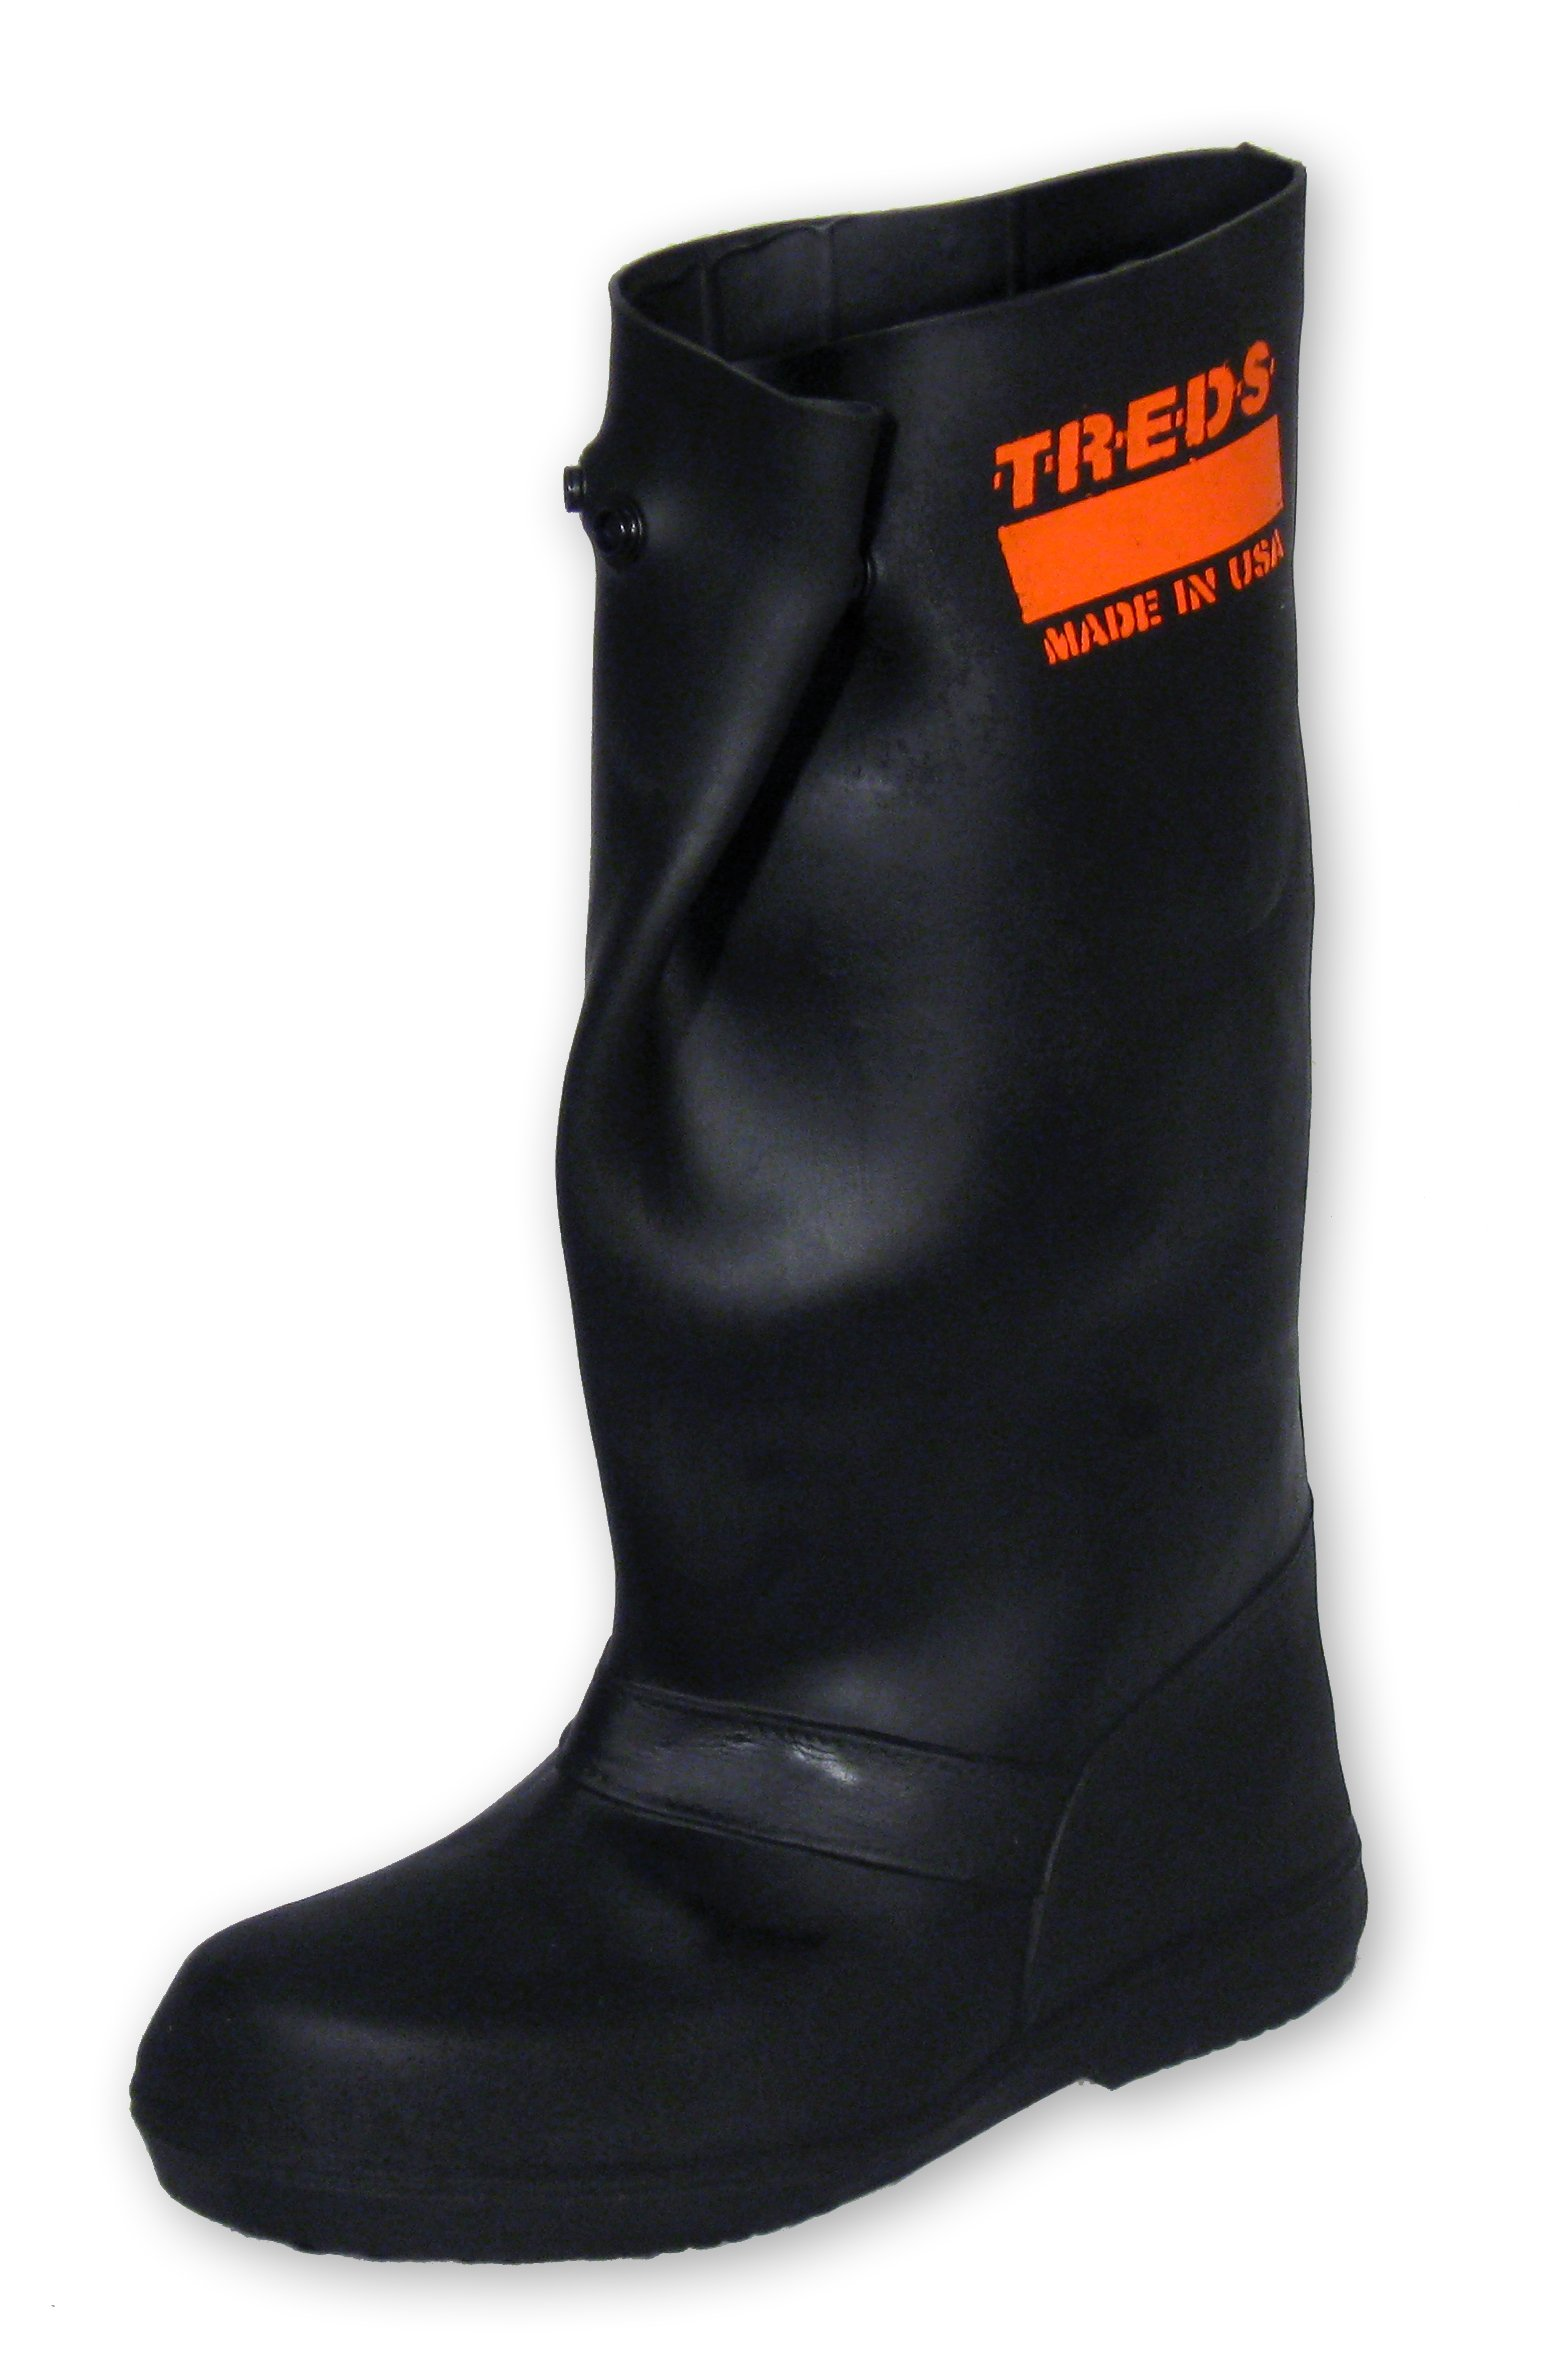 TREDS Super Tough 17'' Pull-On Stretch Rubber Overboots for Rain, Slush, Snow and Construction, Size Large/X-Large by Treds